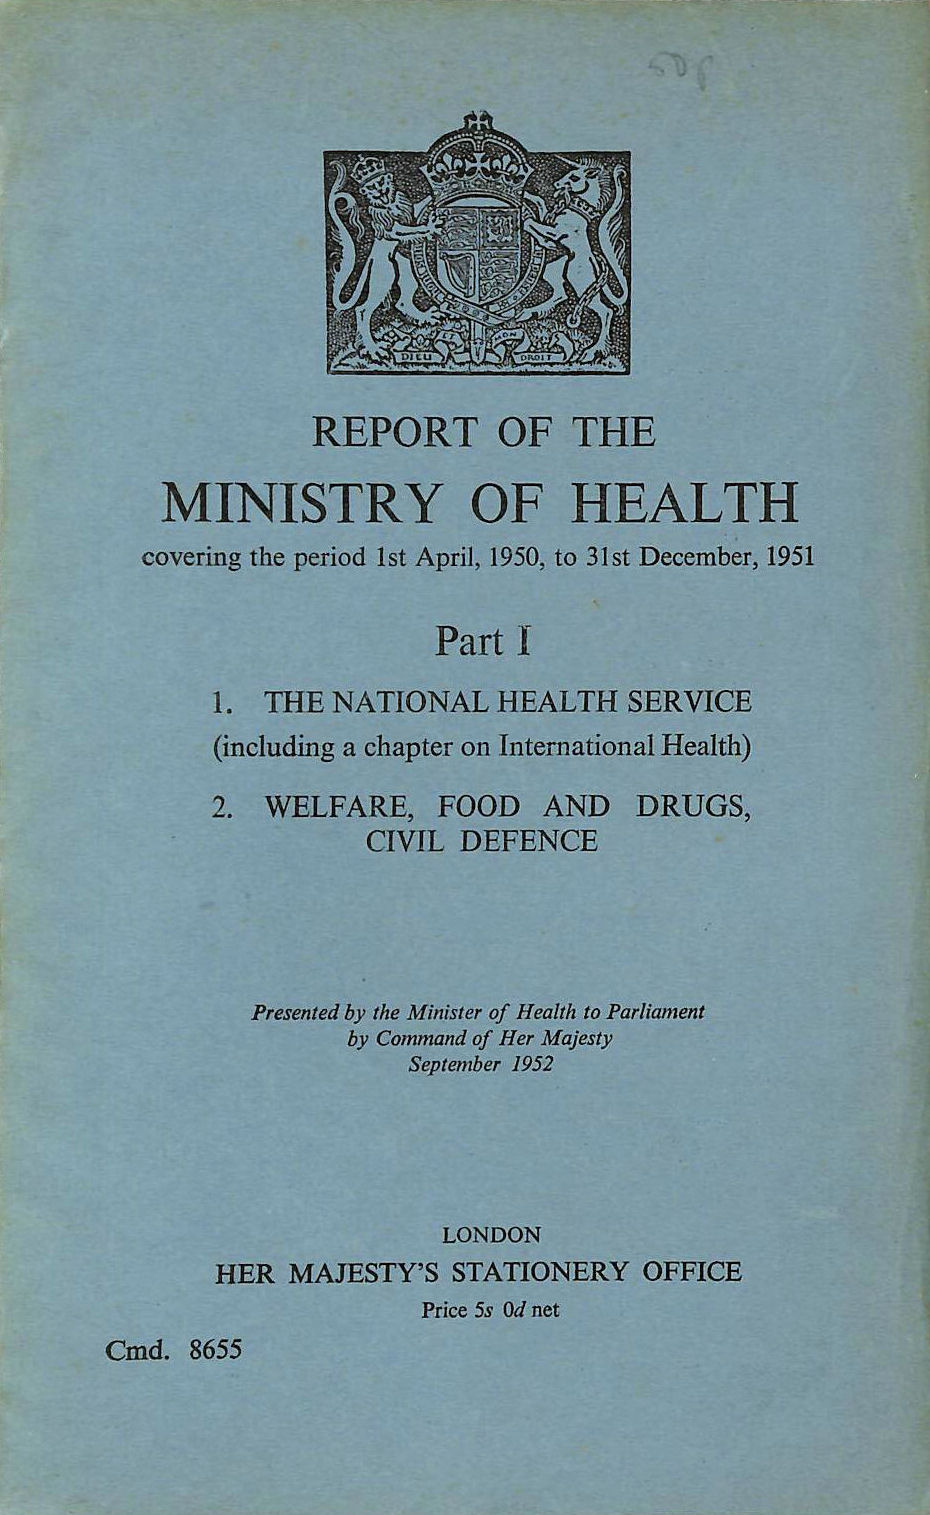 Image for Report of the Ministry of Health, Part I. 1951